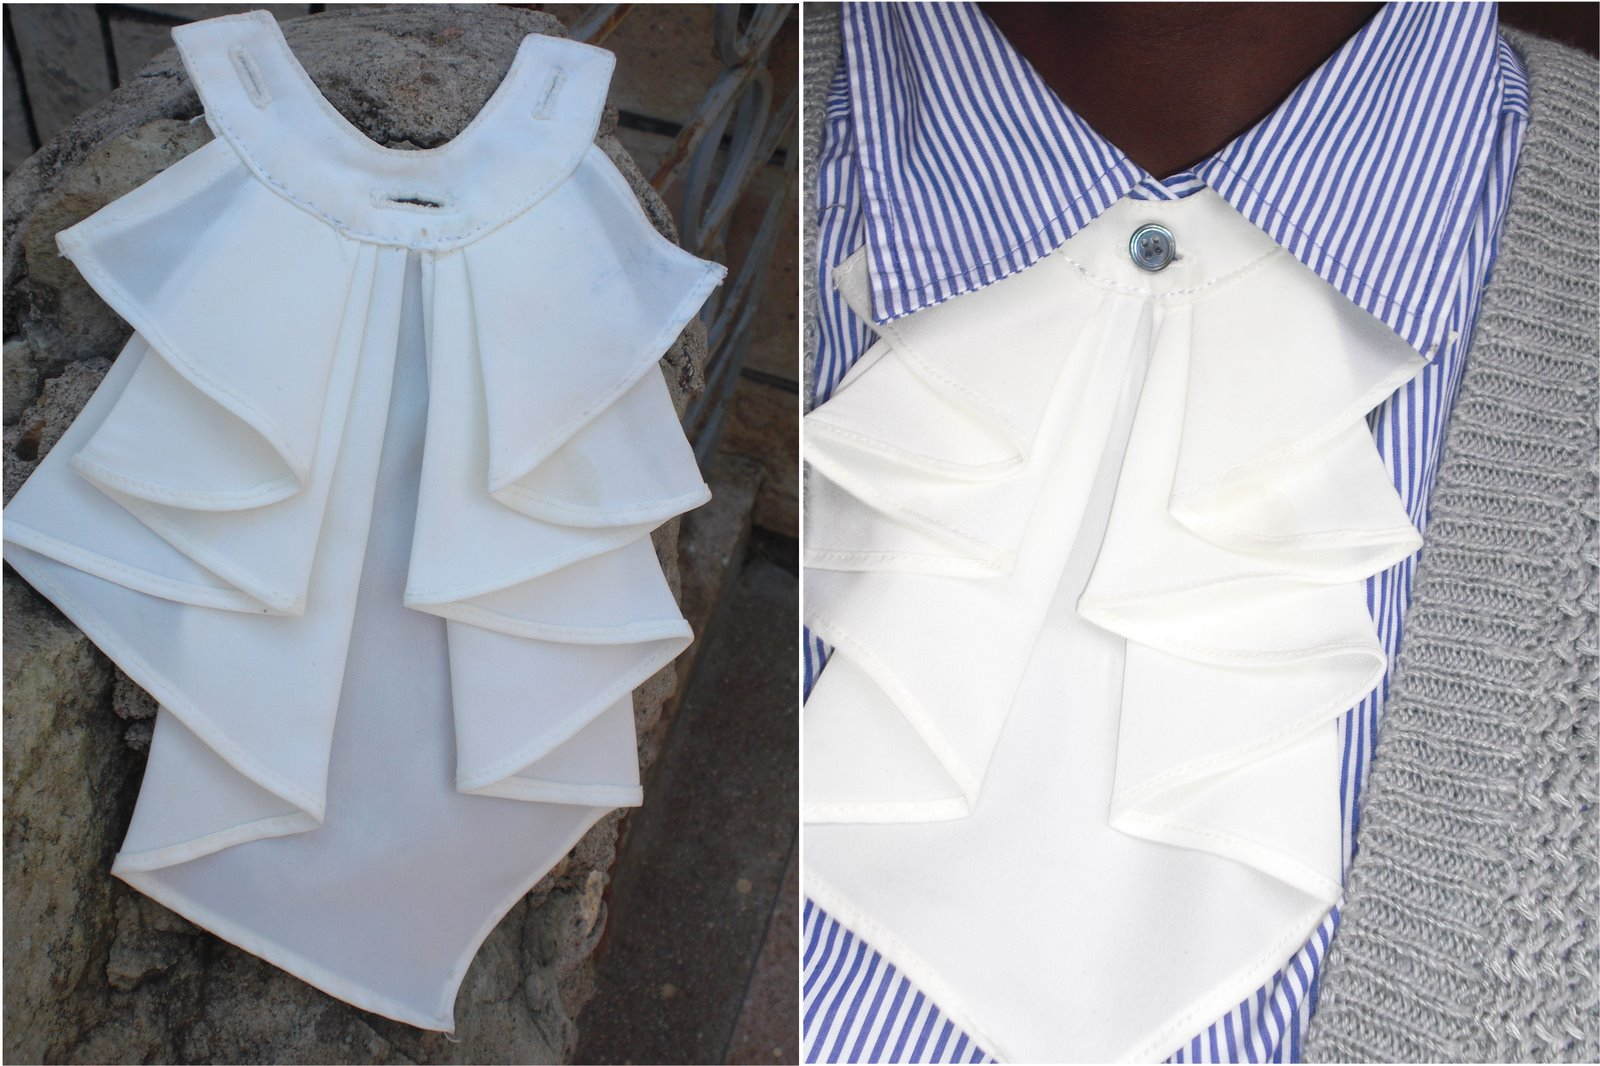 Make a paper pattern of the jabot place the paper pattern on the